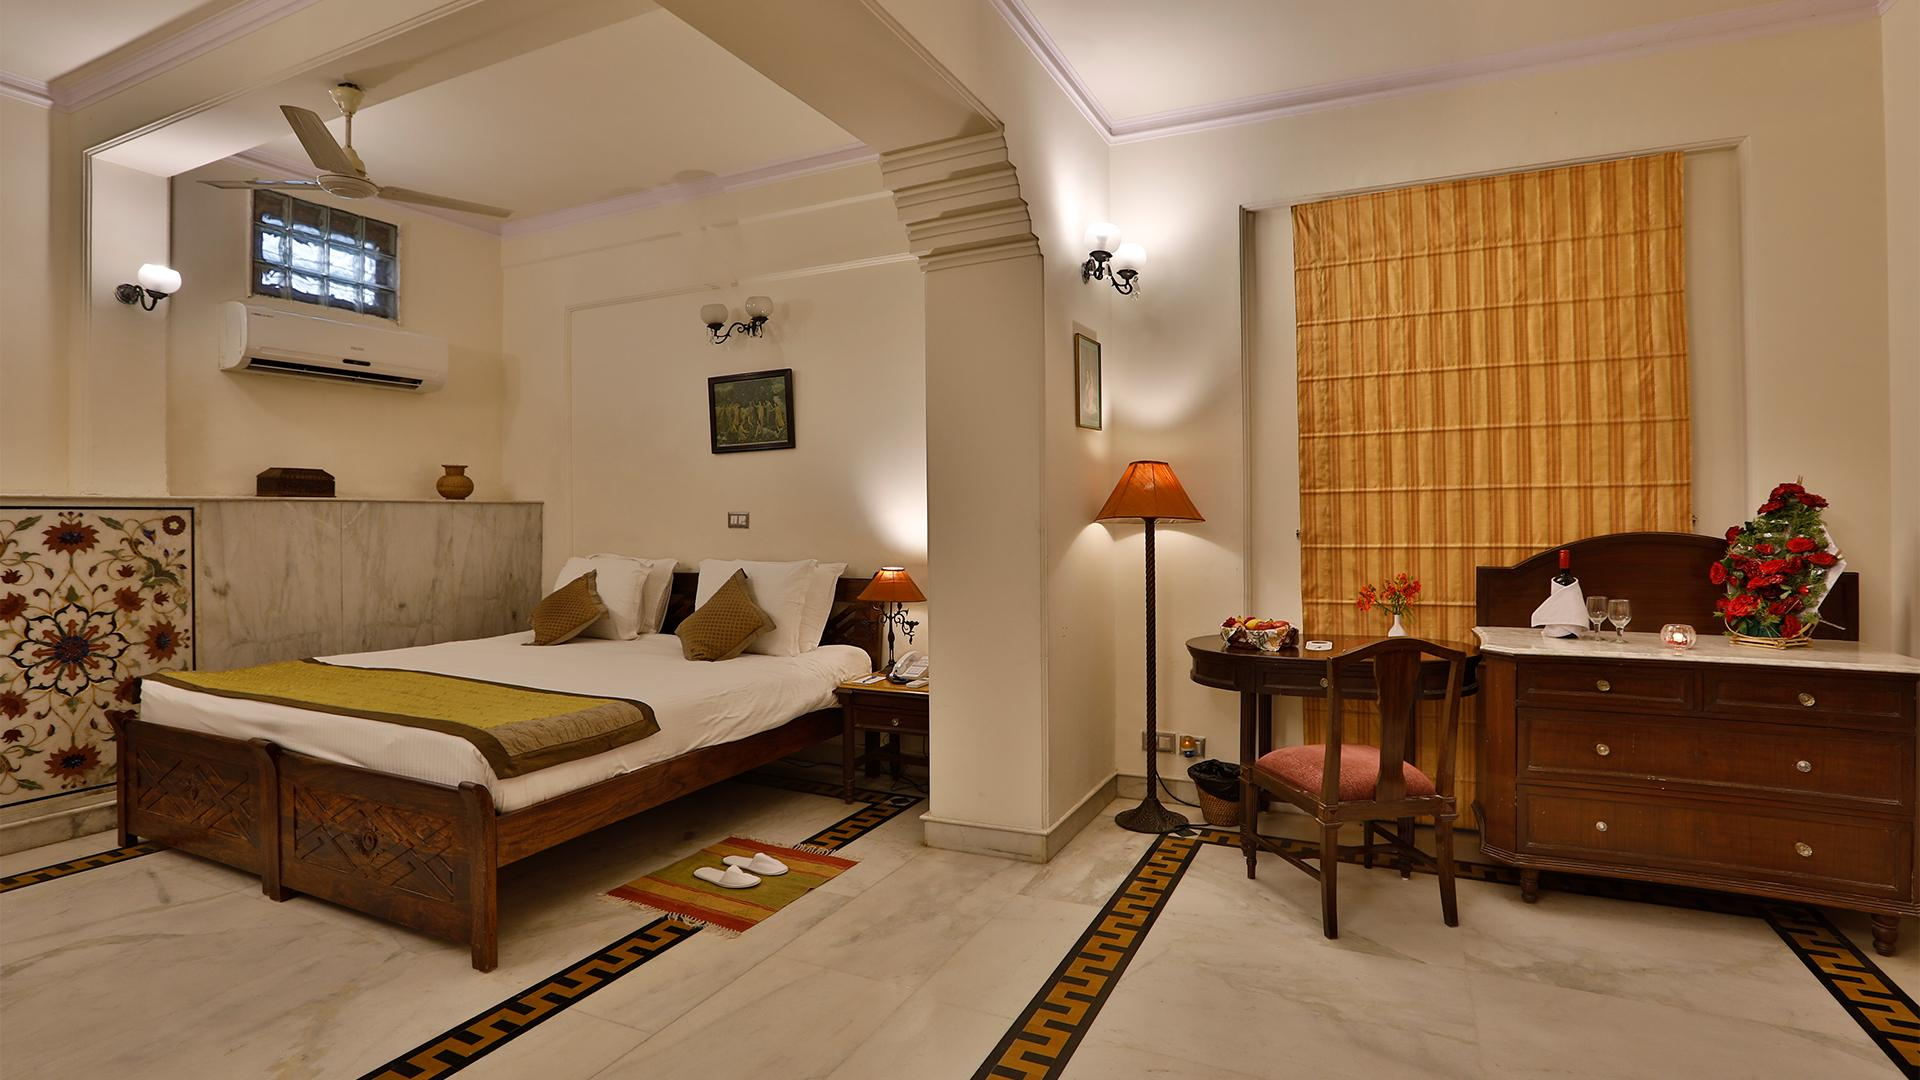 Deluxe Heritage Room image 1 at The Bagh by Bharatpur, Rajasthan, India